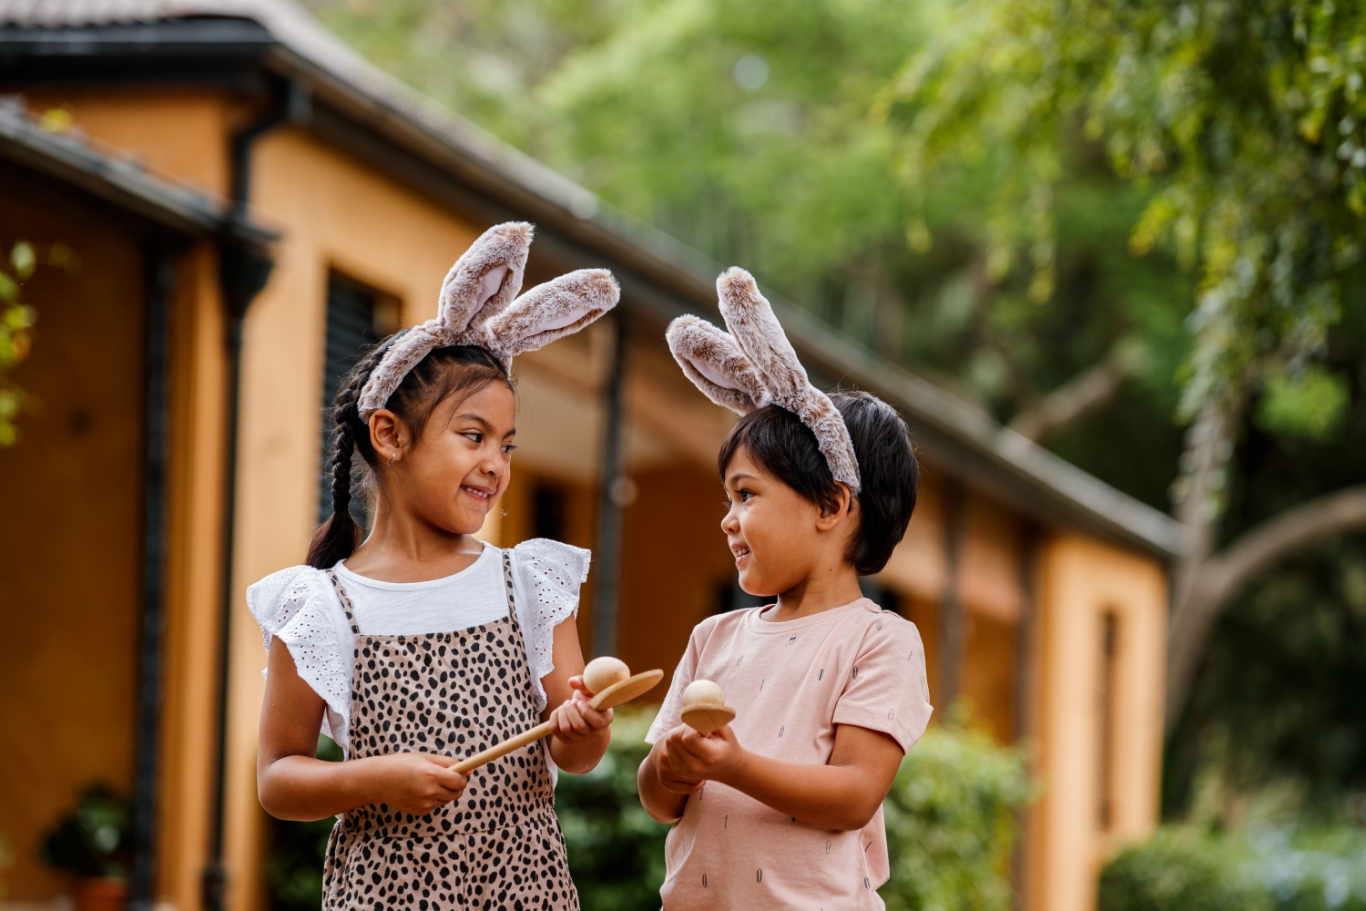 Children with egg and spoon at Elizabeth Farm.